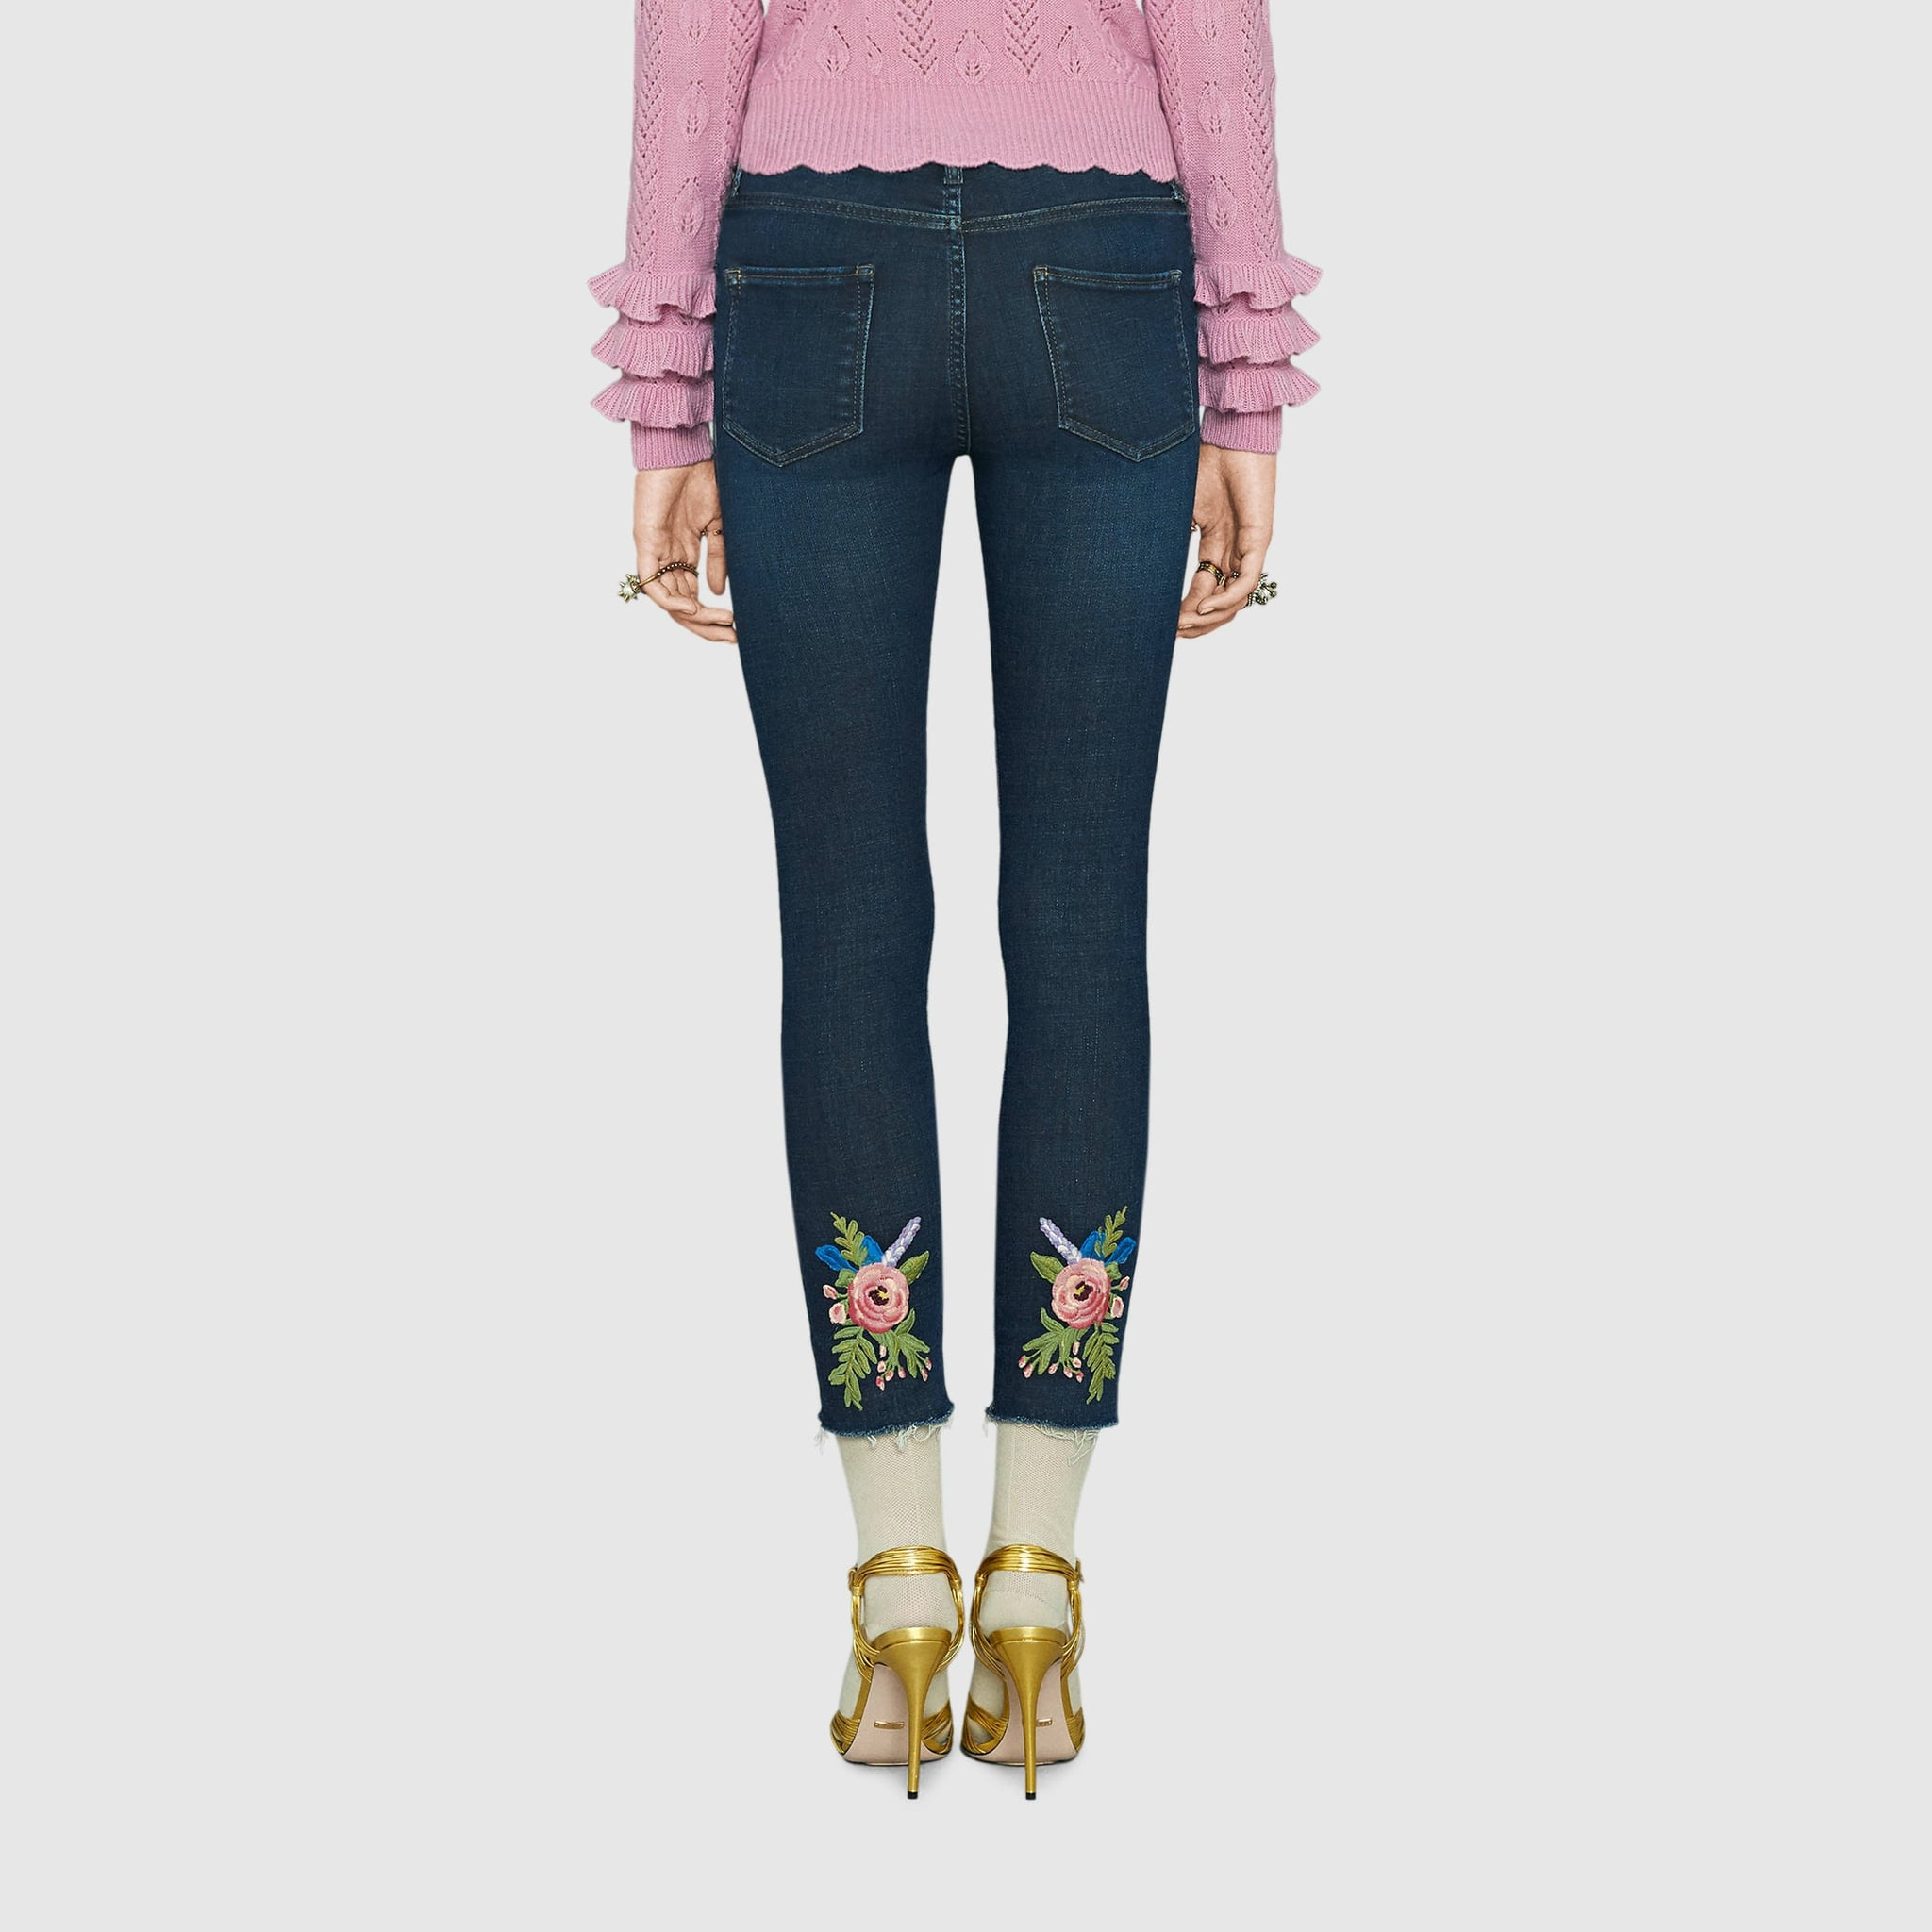 737e570ab Gucci Angry Cat Embroidered Denim Pants in Black | Gucci Jeans ...